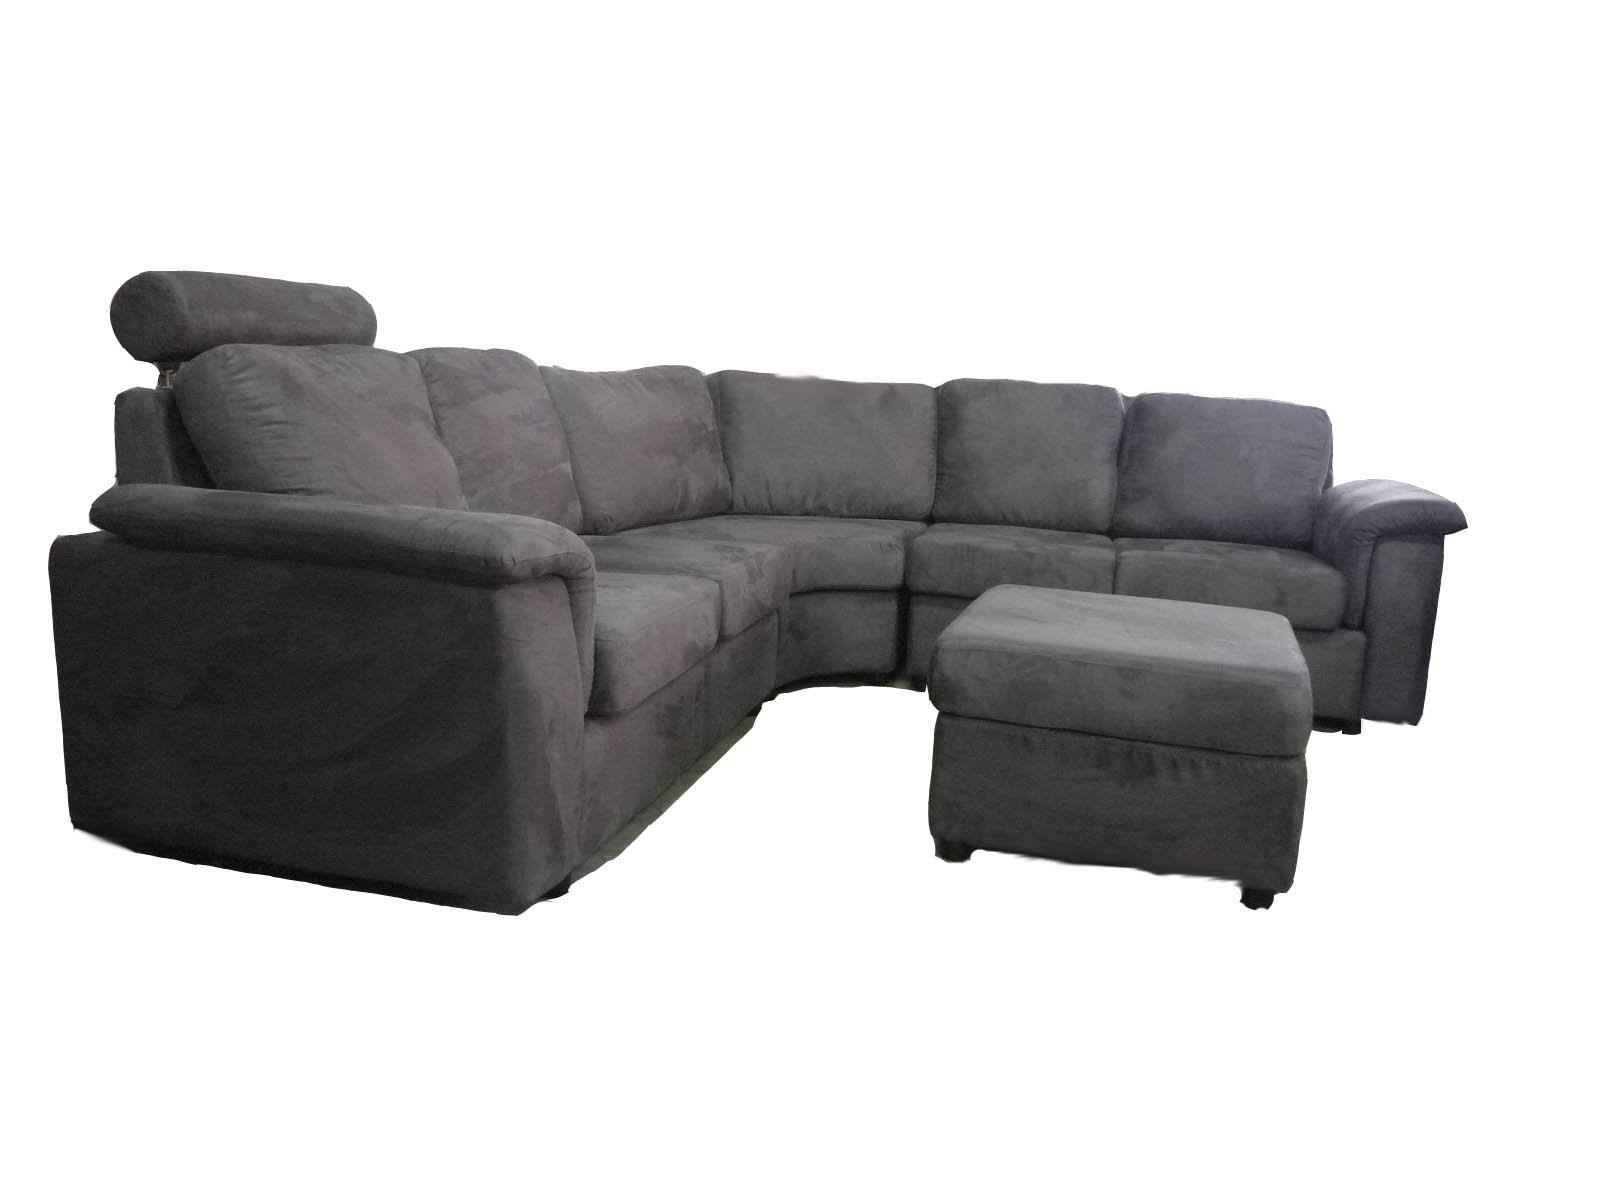 Beautiful Sectional Sofas Ikea 60 For Living Room Sofa Ideas With inside Sectional Sofas at Ikea (Image 3 of 15)